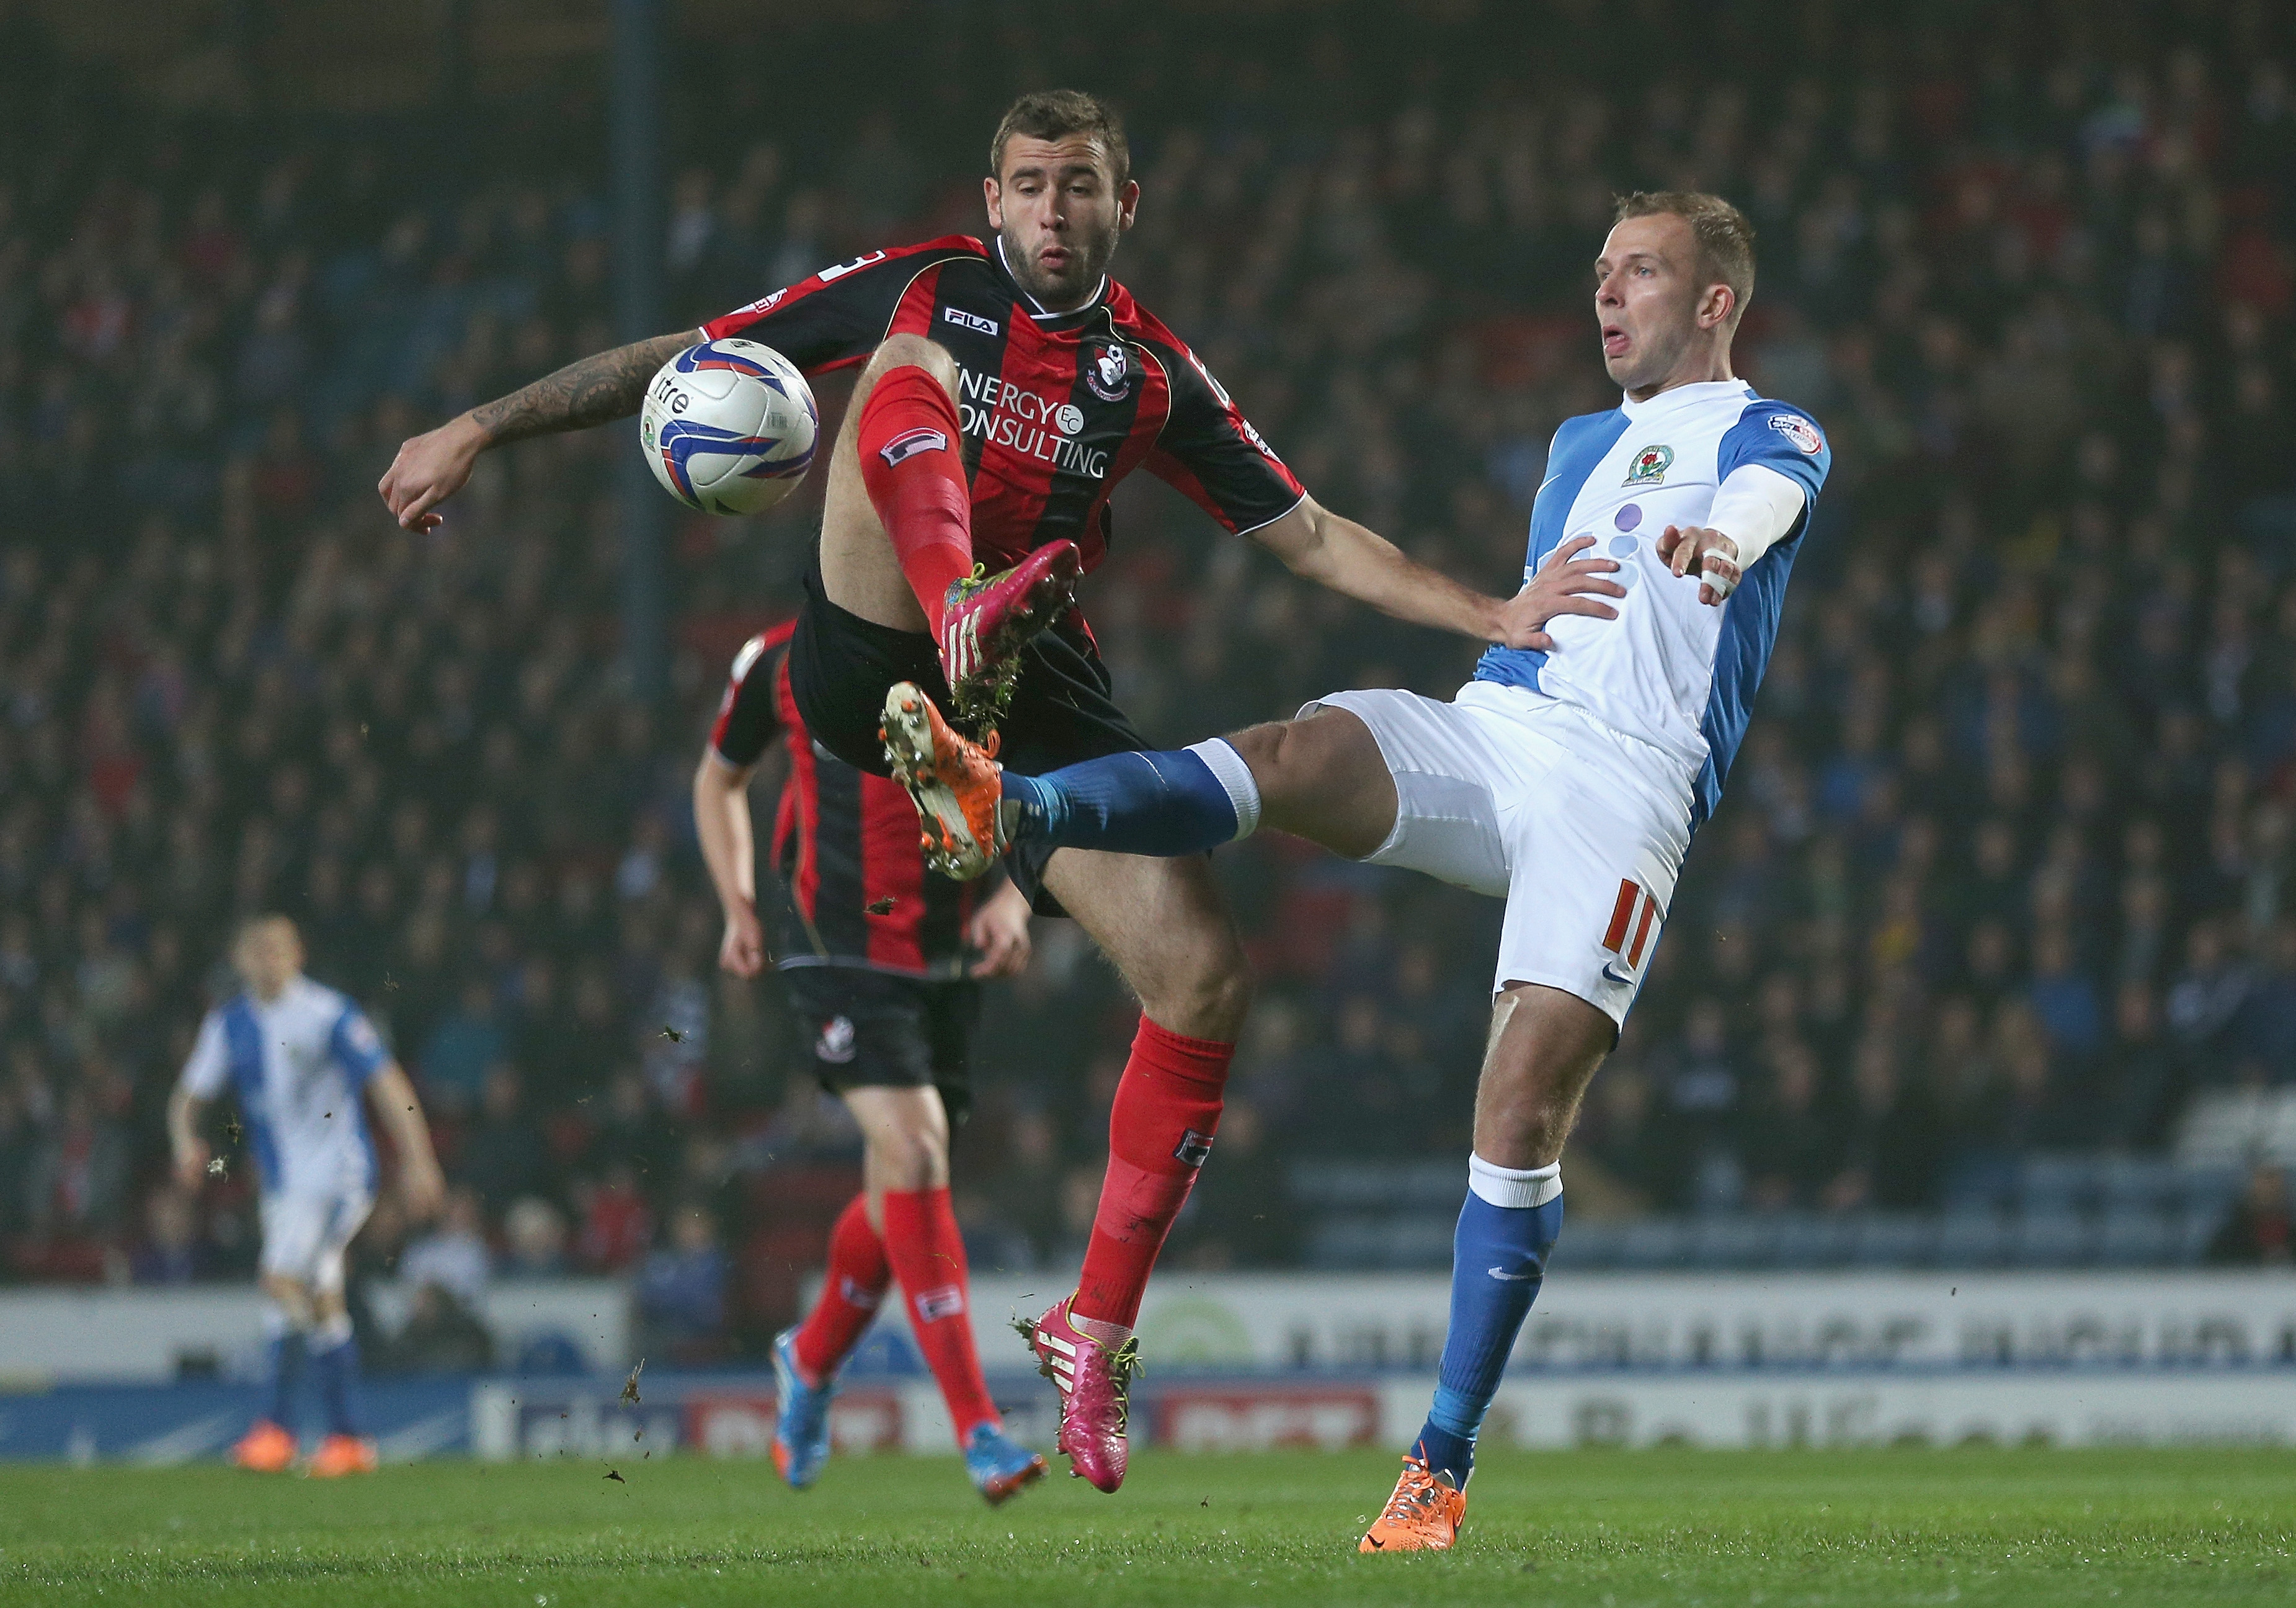 Why Blackburn Rovers should keep faith with under-fire Gary Bowyer